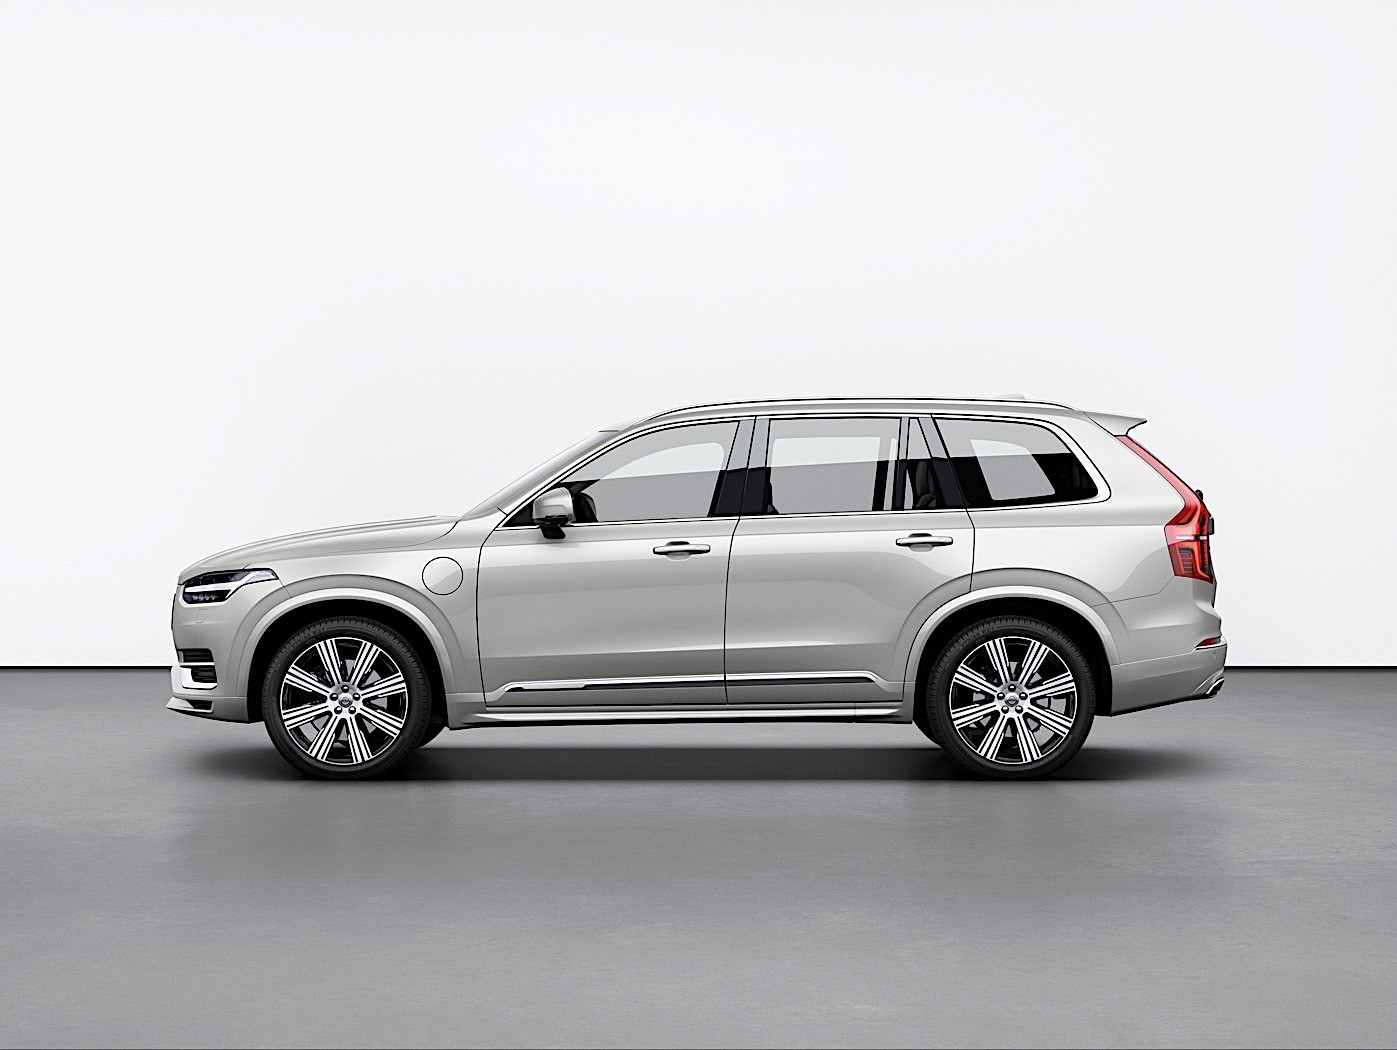 second-gen volvo xc90 to go on sale in 2015